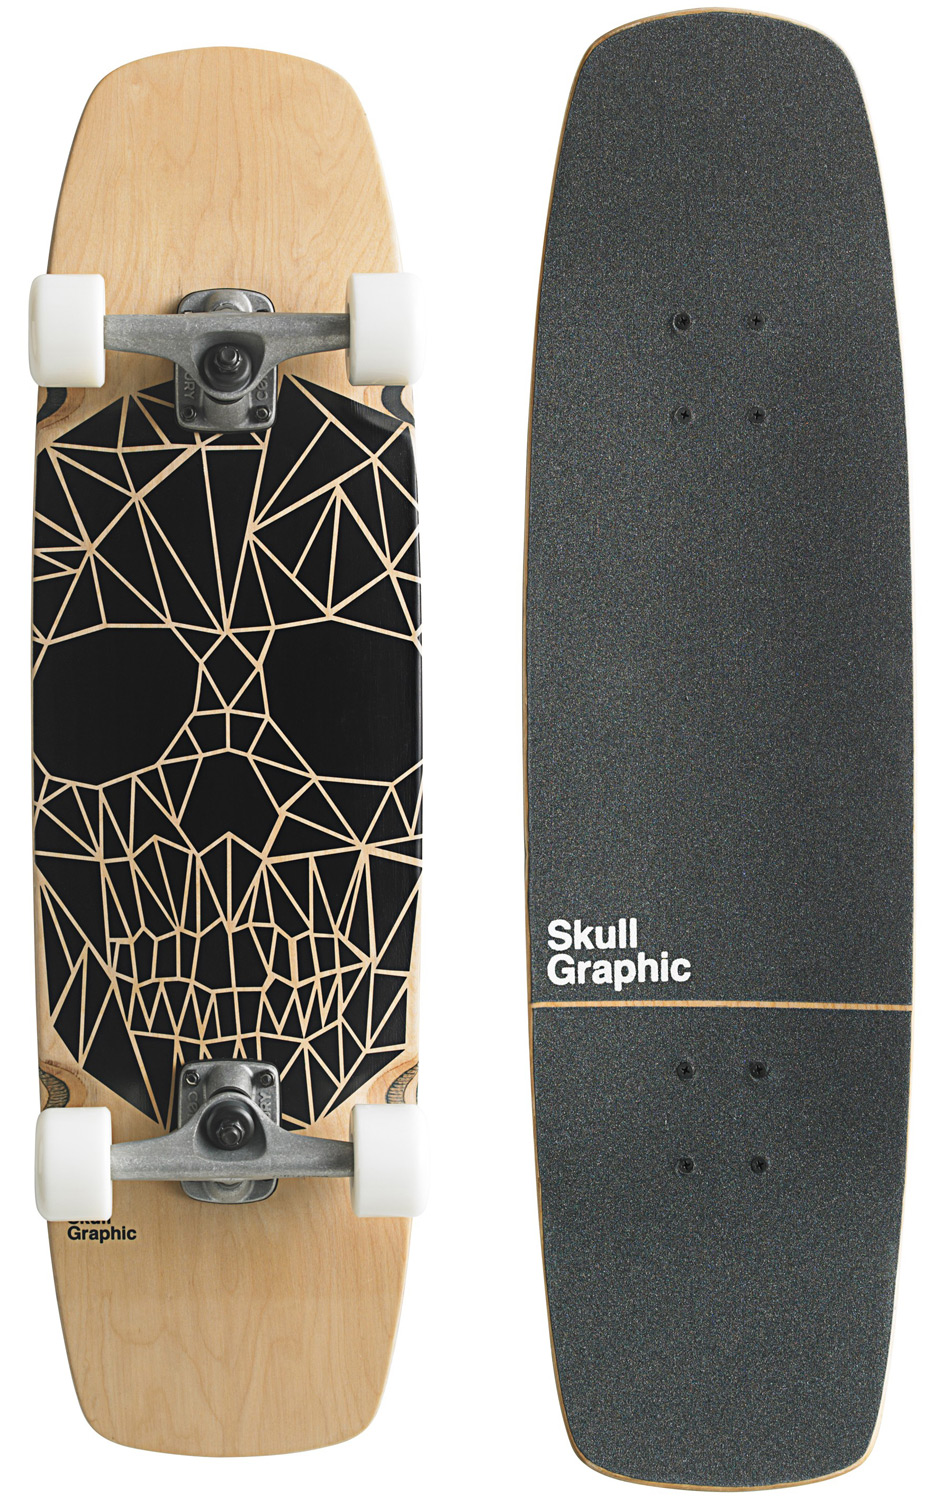 "Skateboard Key Features of the Goldcoast Skull Graphic Longboard Complete: 32"" long x 8.75"" wide, 14.25"" wheelbase 7 ply Canadian maple Die cut and printed grip tape Hellcat wheels, 58mm 90a Century 129mm trucks 95a bushings -.25"" risers Genuine Goldcoast abec 7 bearings - $83.95"